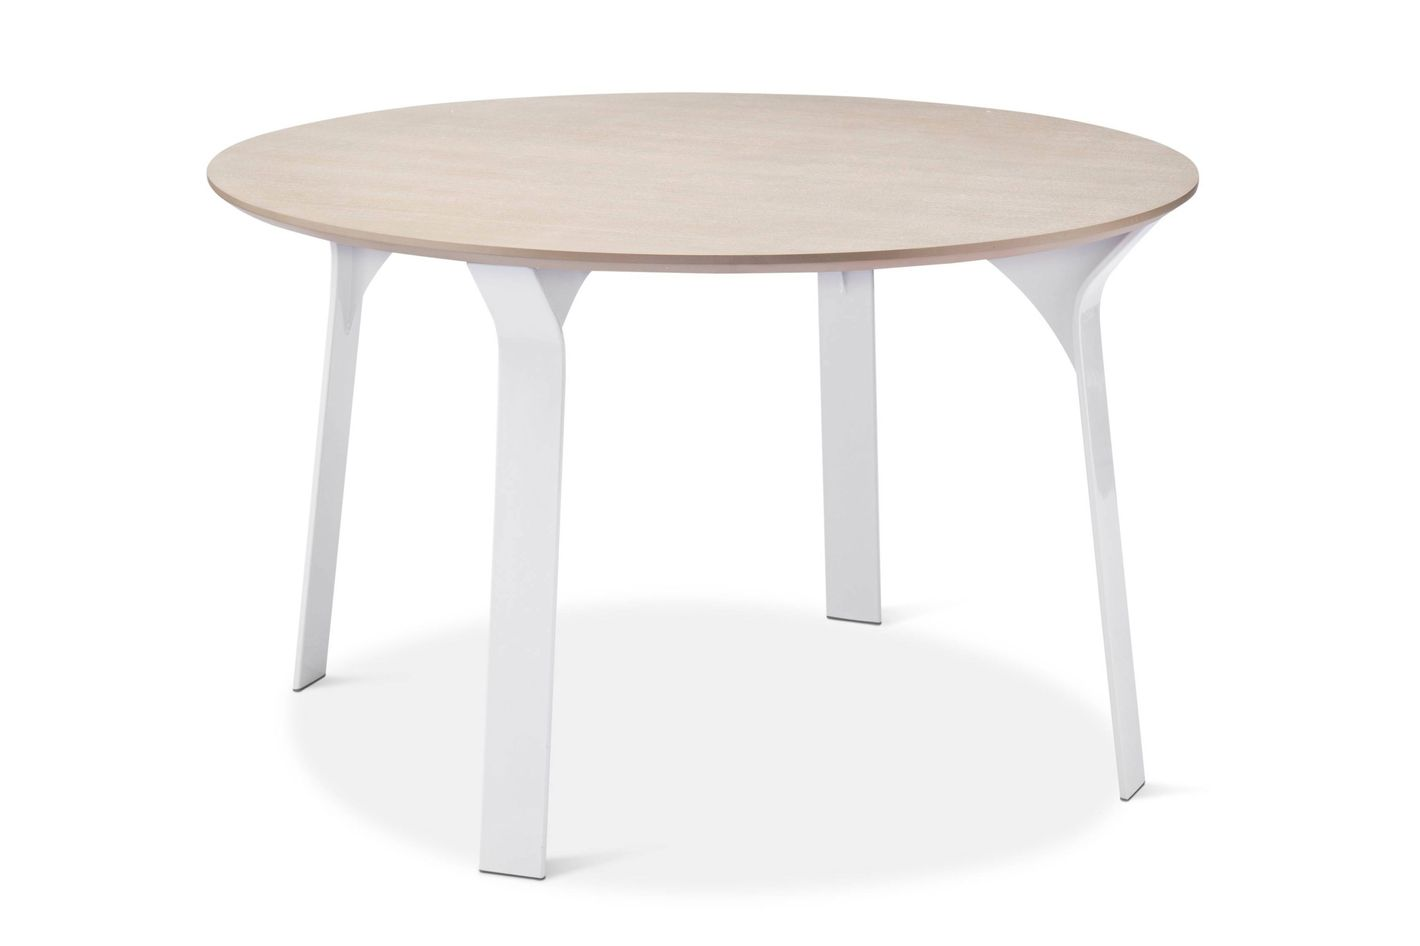 Modern by Dwell Magazine Dining Table White/Natural